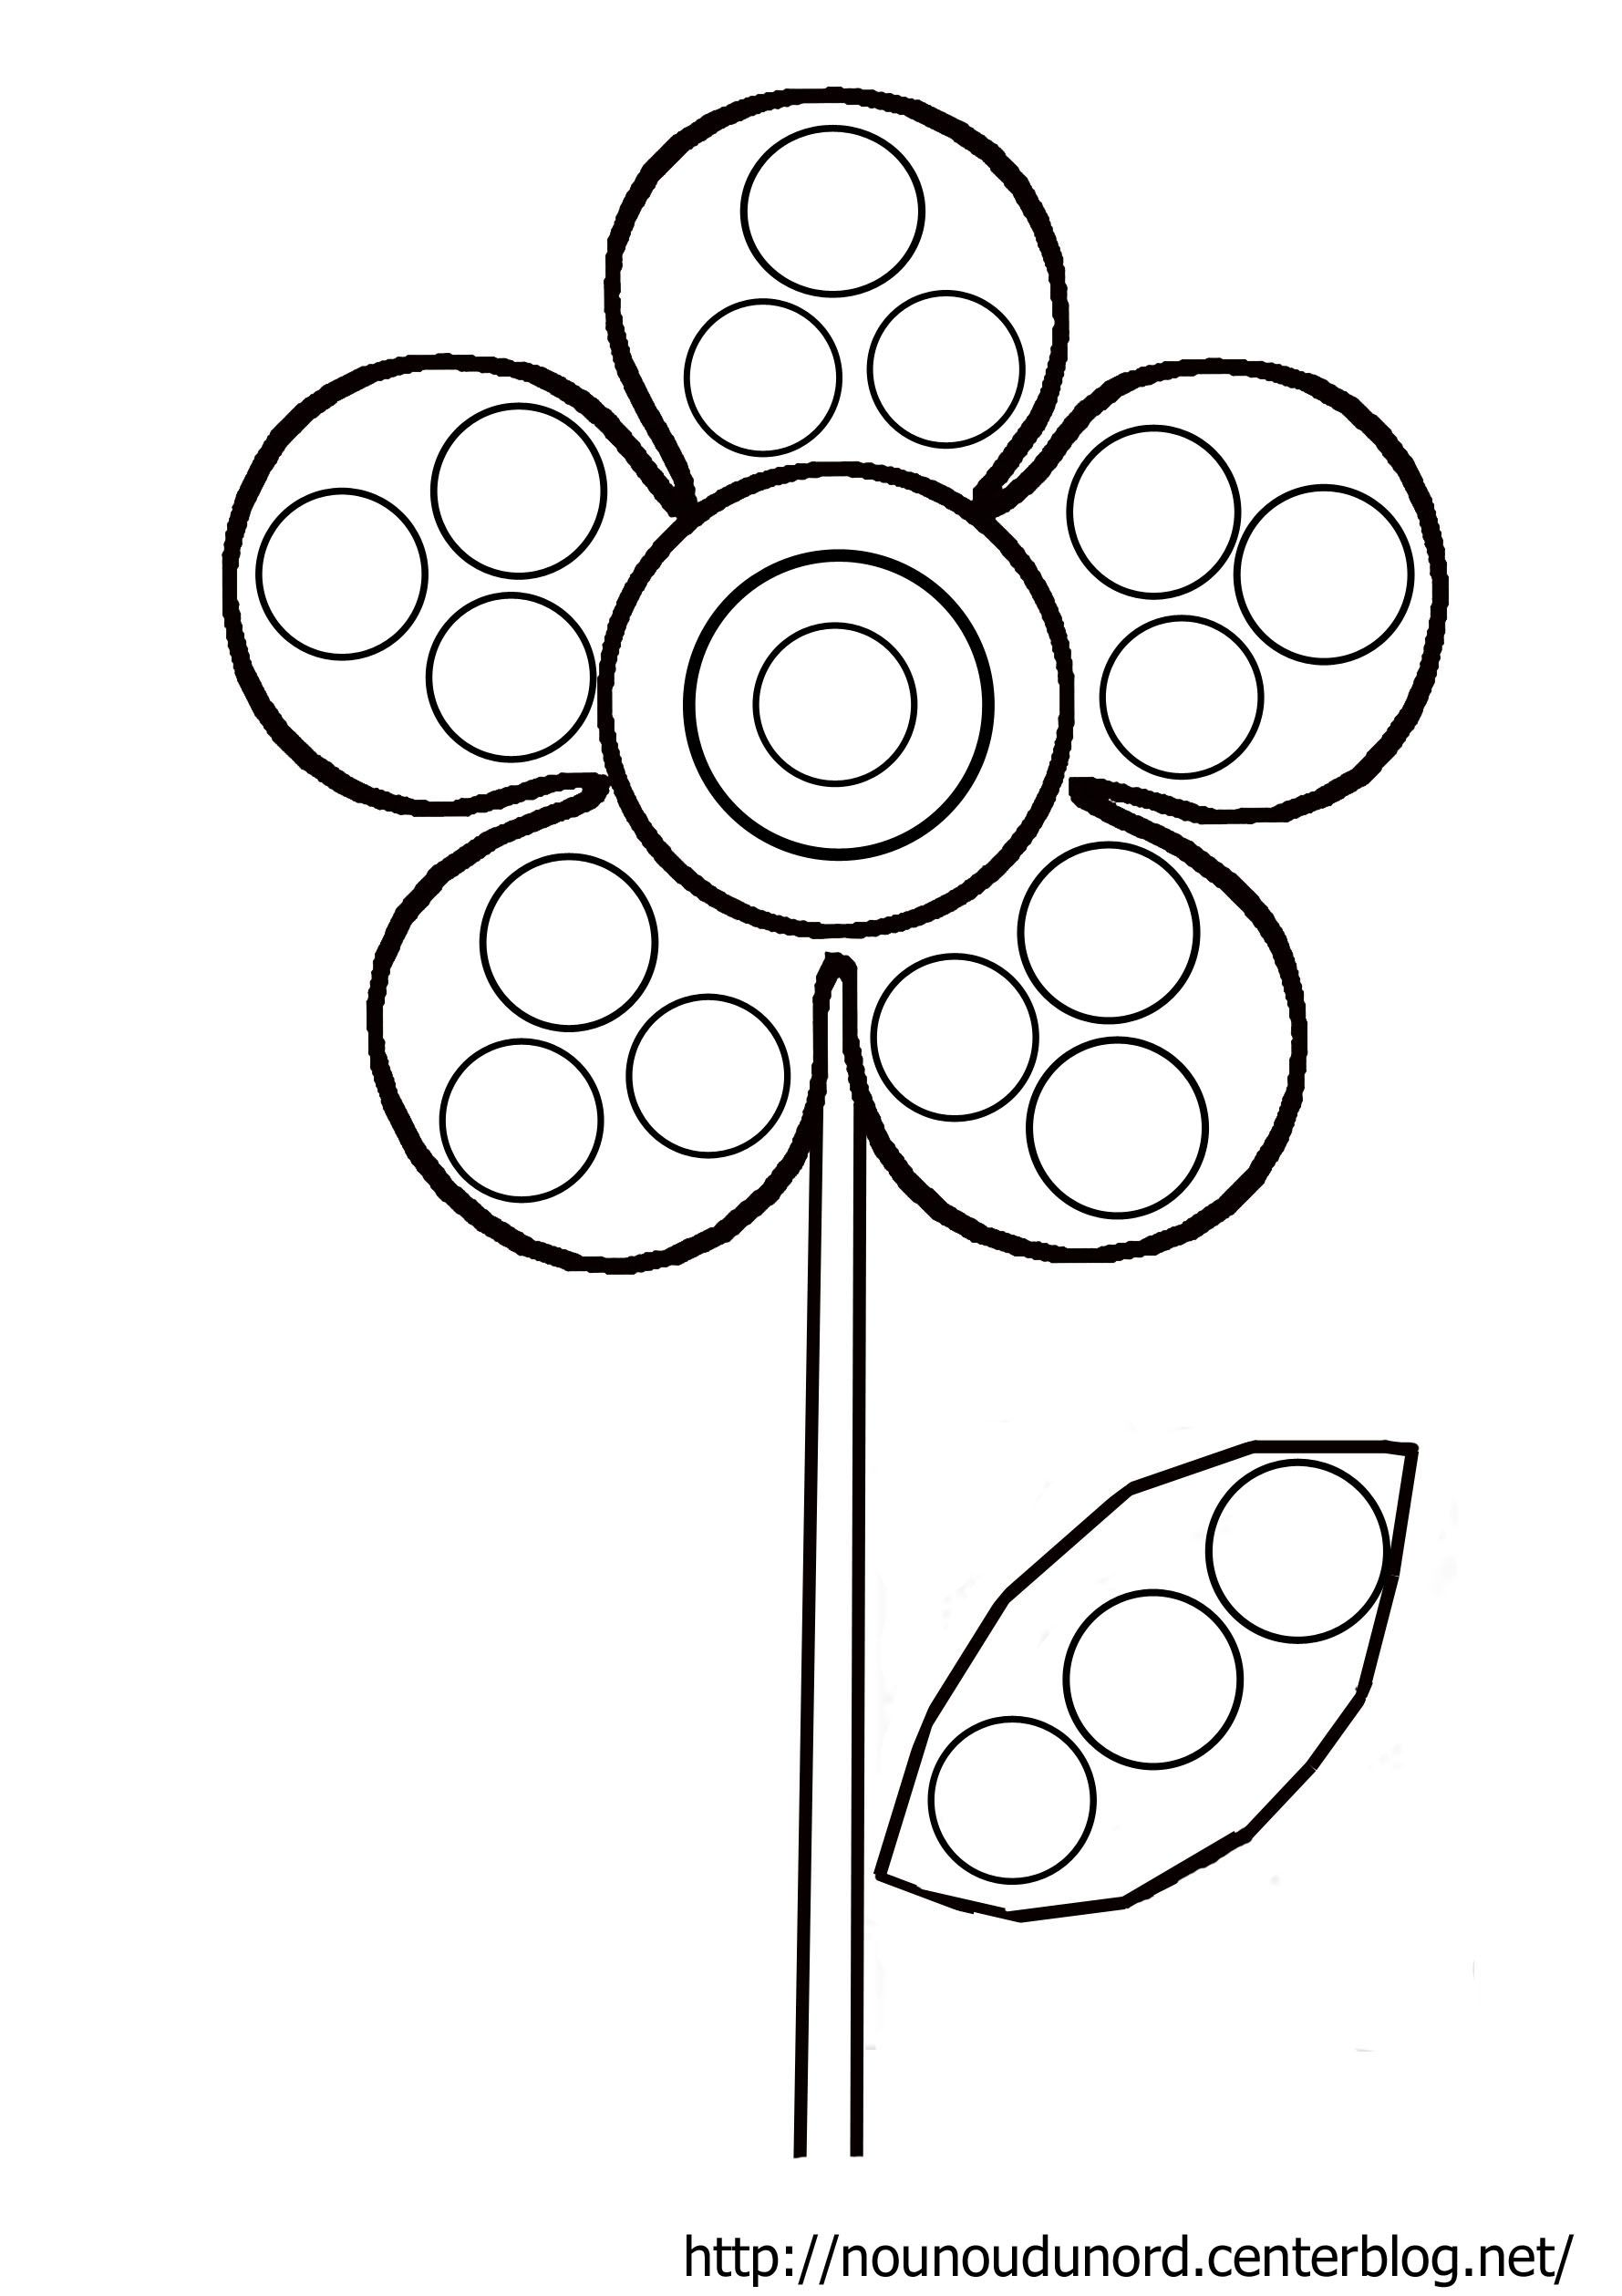 Image du blog activit s enfants pinterest coloriage fleur - Image du printemps a colorier ...